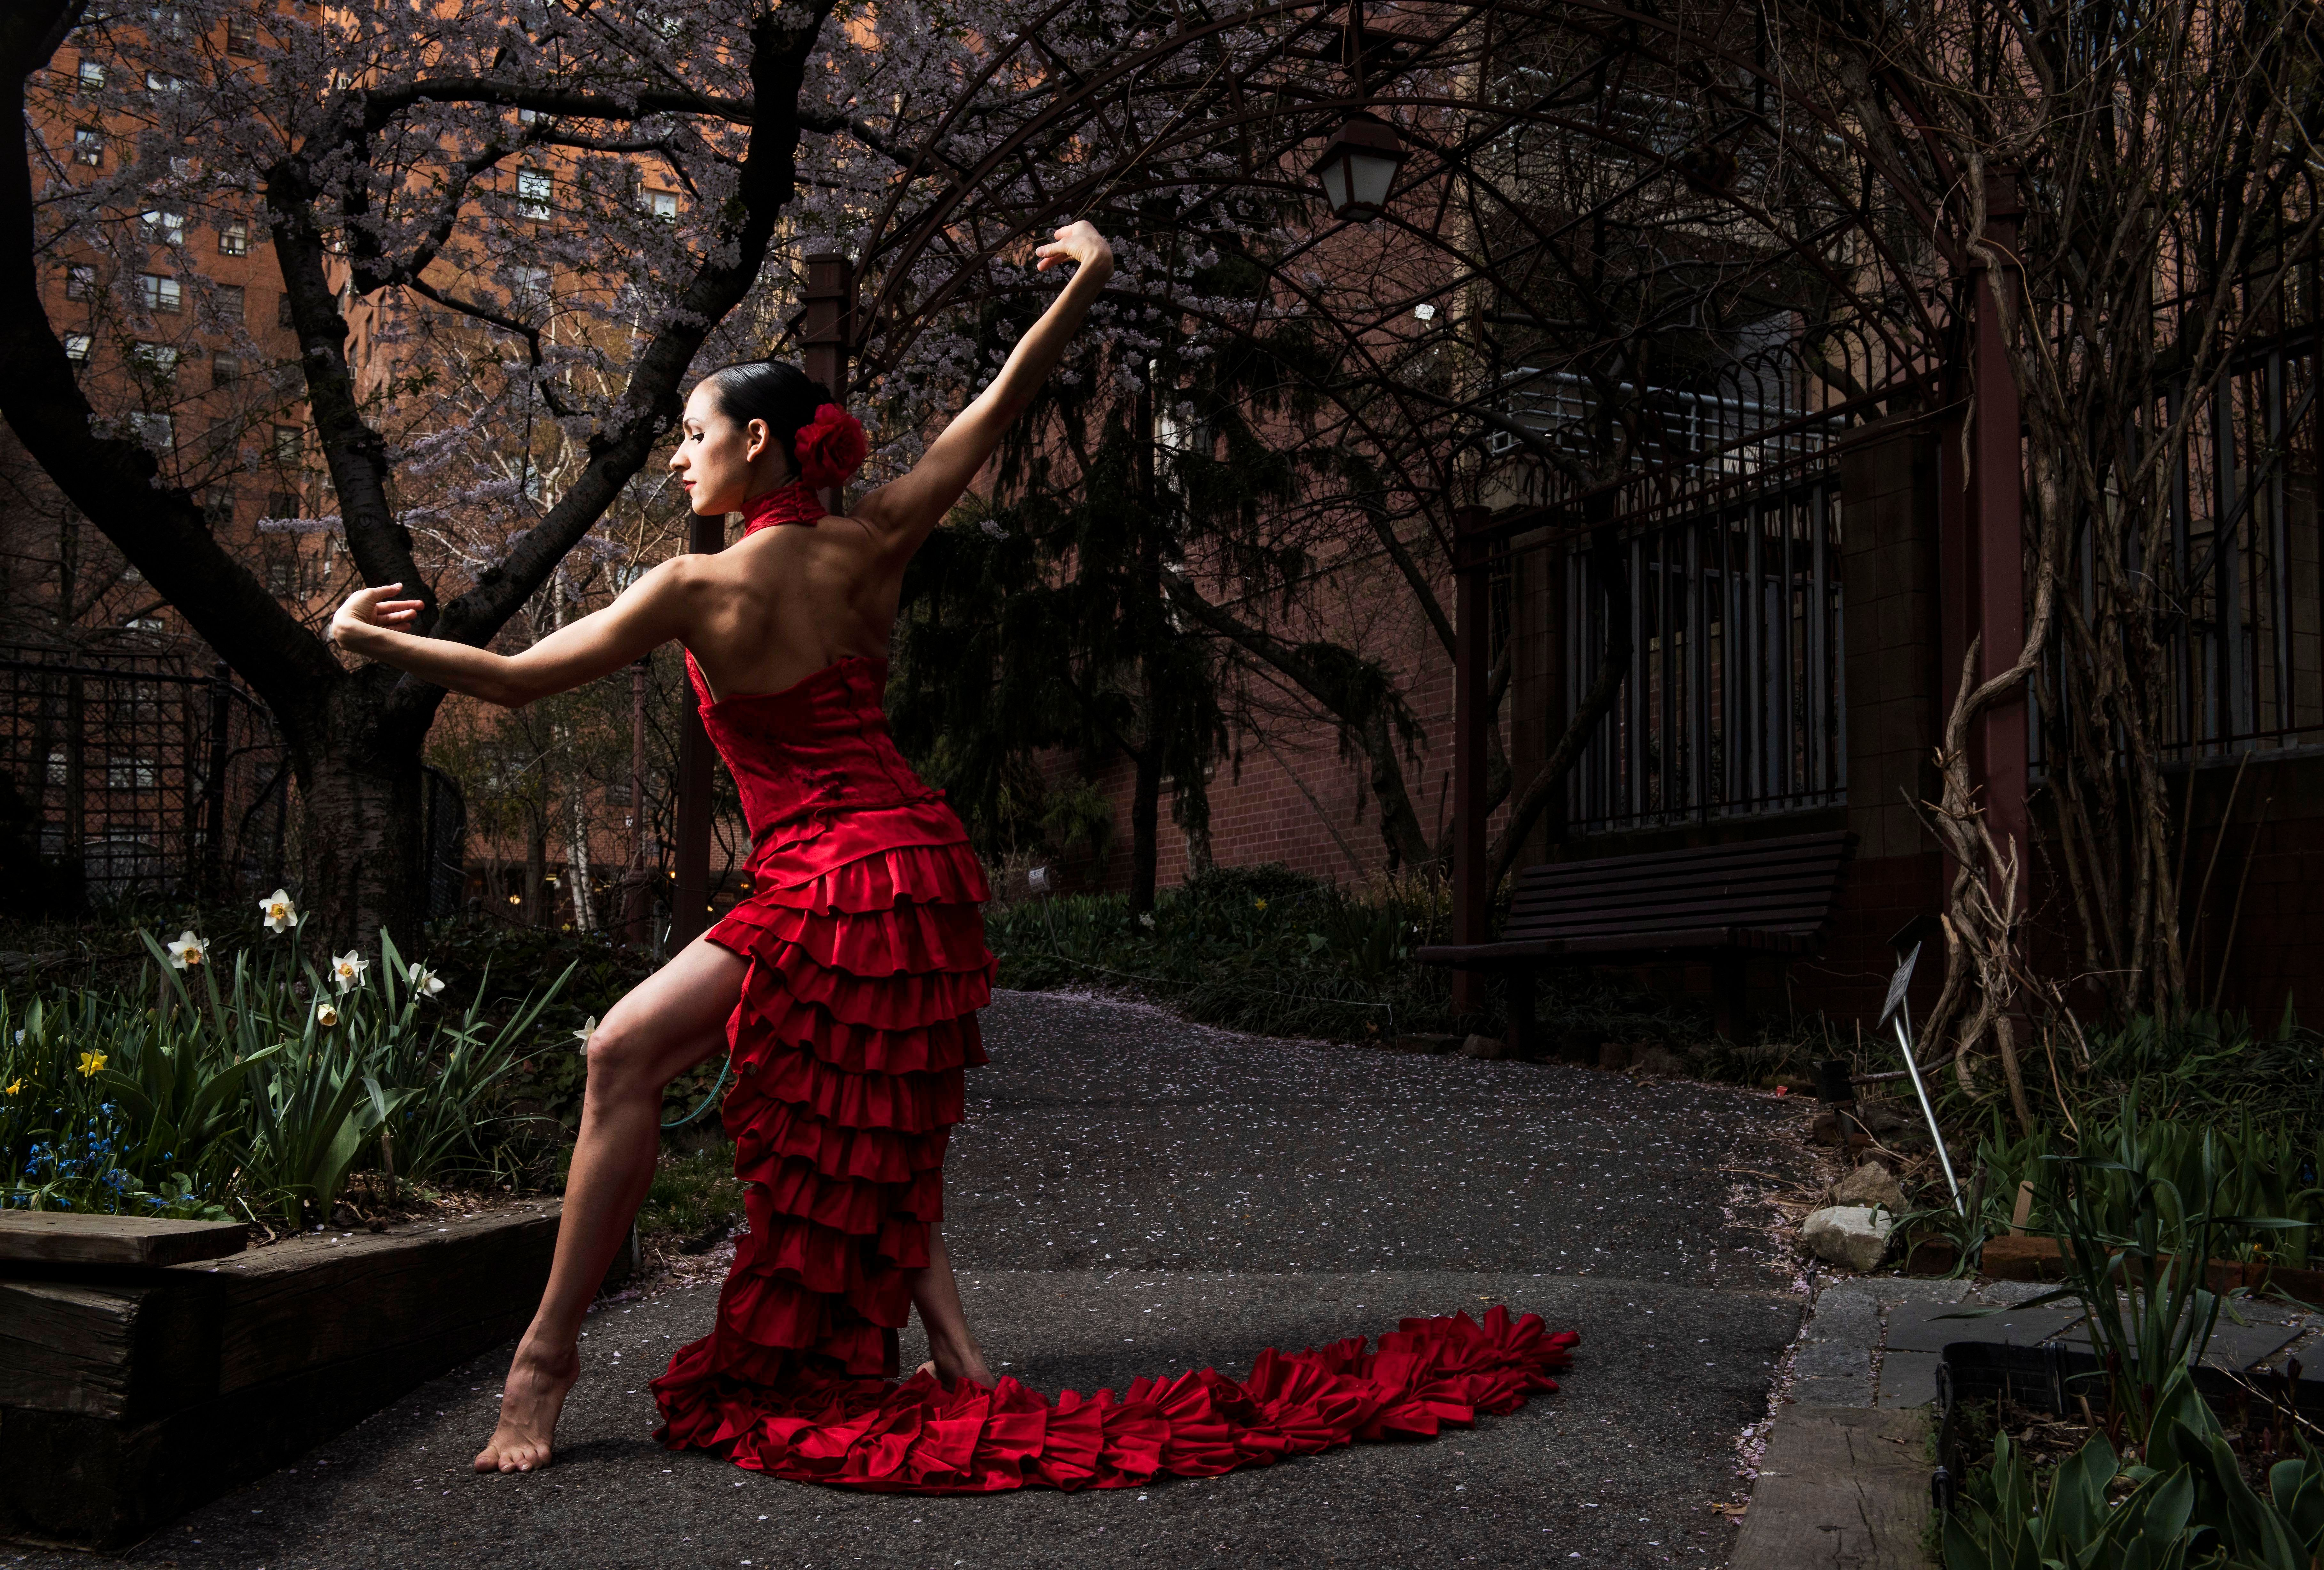 Ballet Hispánico dancer Melissa Fernandez, from Miami, Florida, poses in a community garden in Manhattan's Upper West